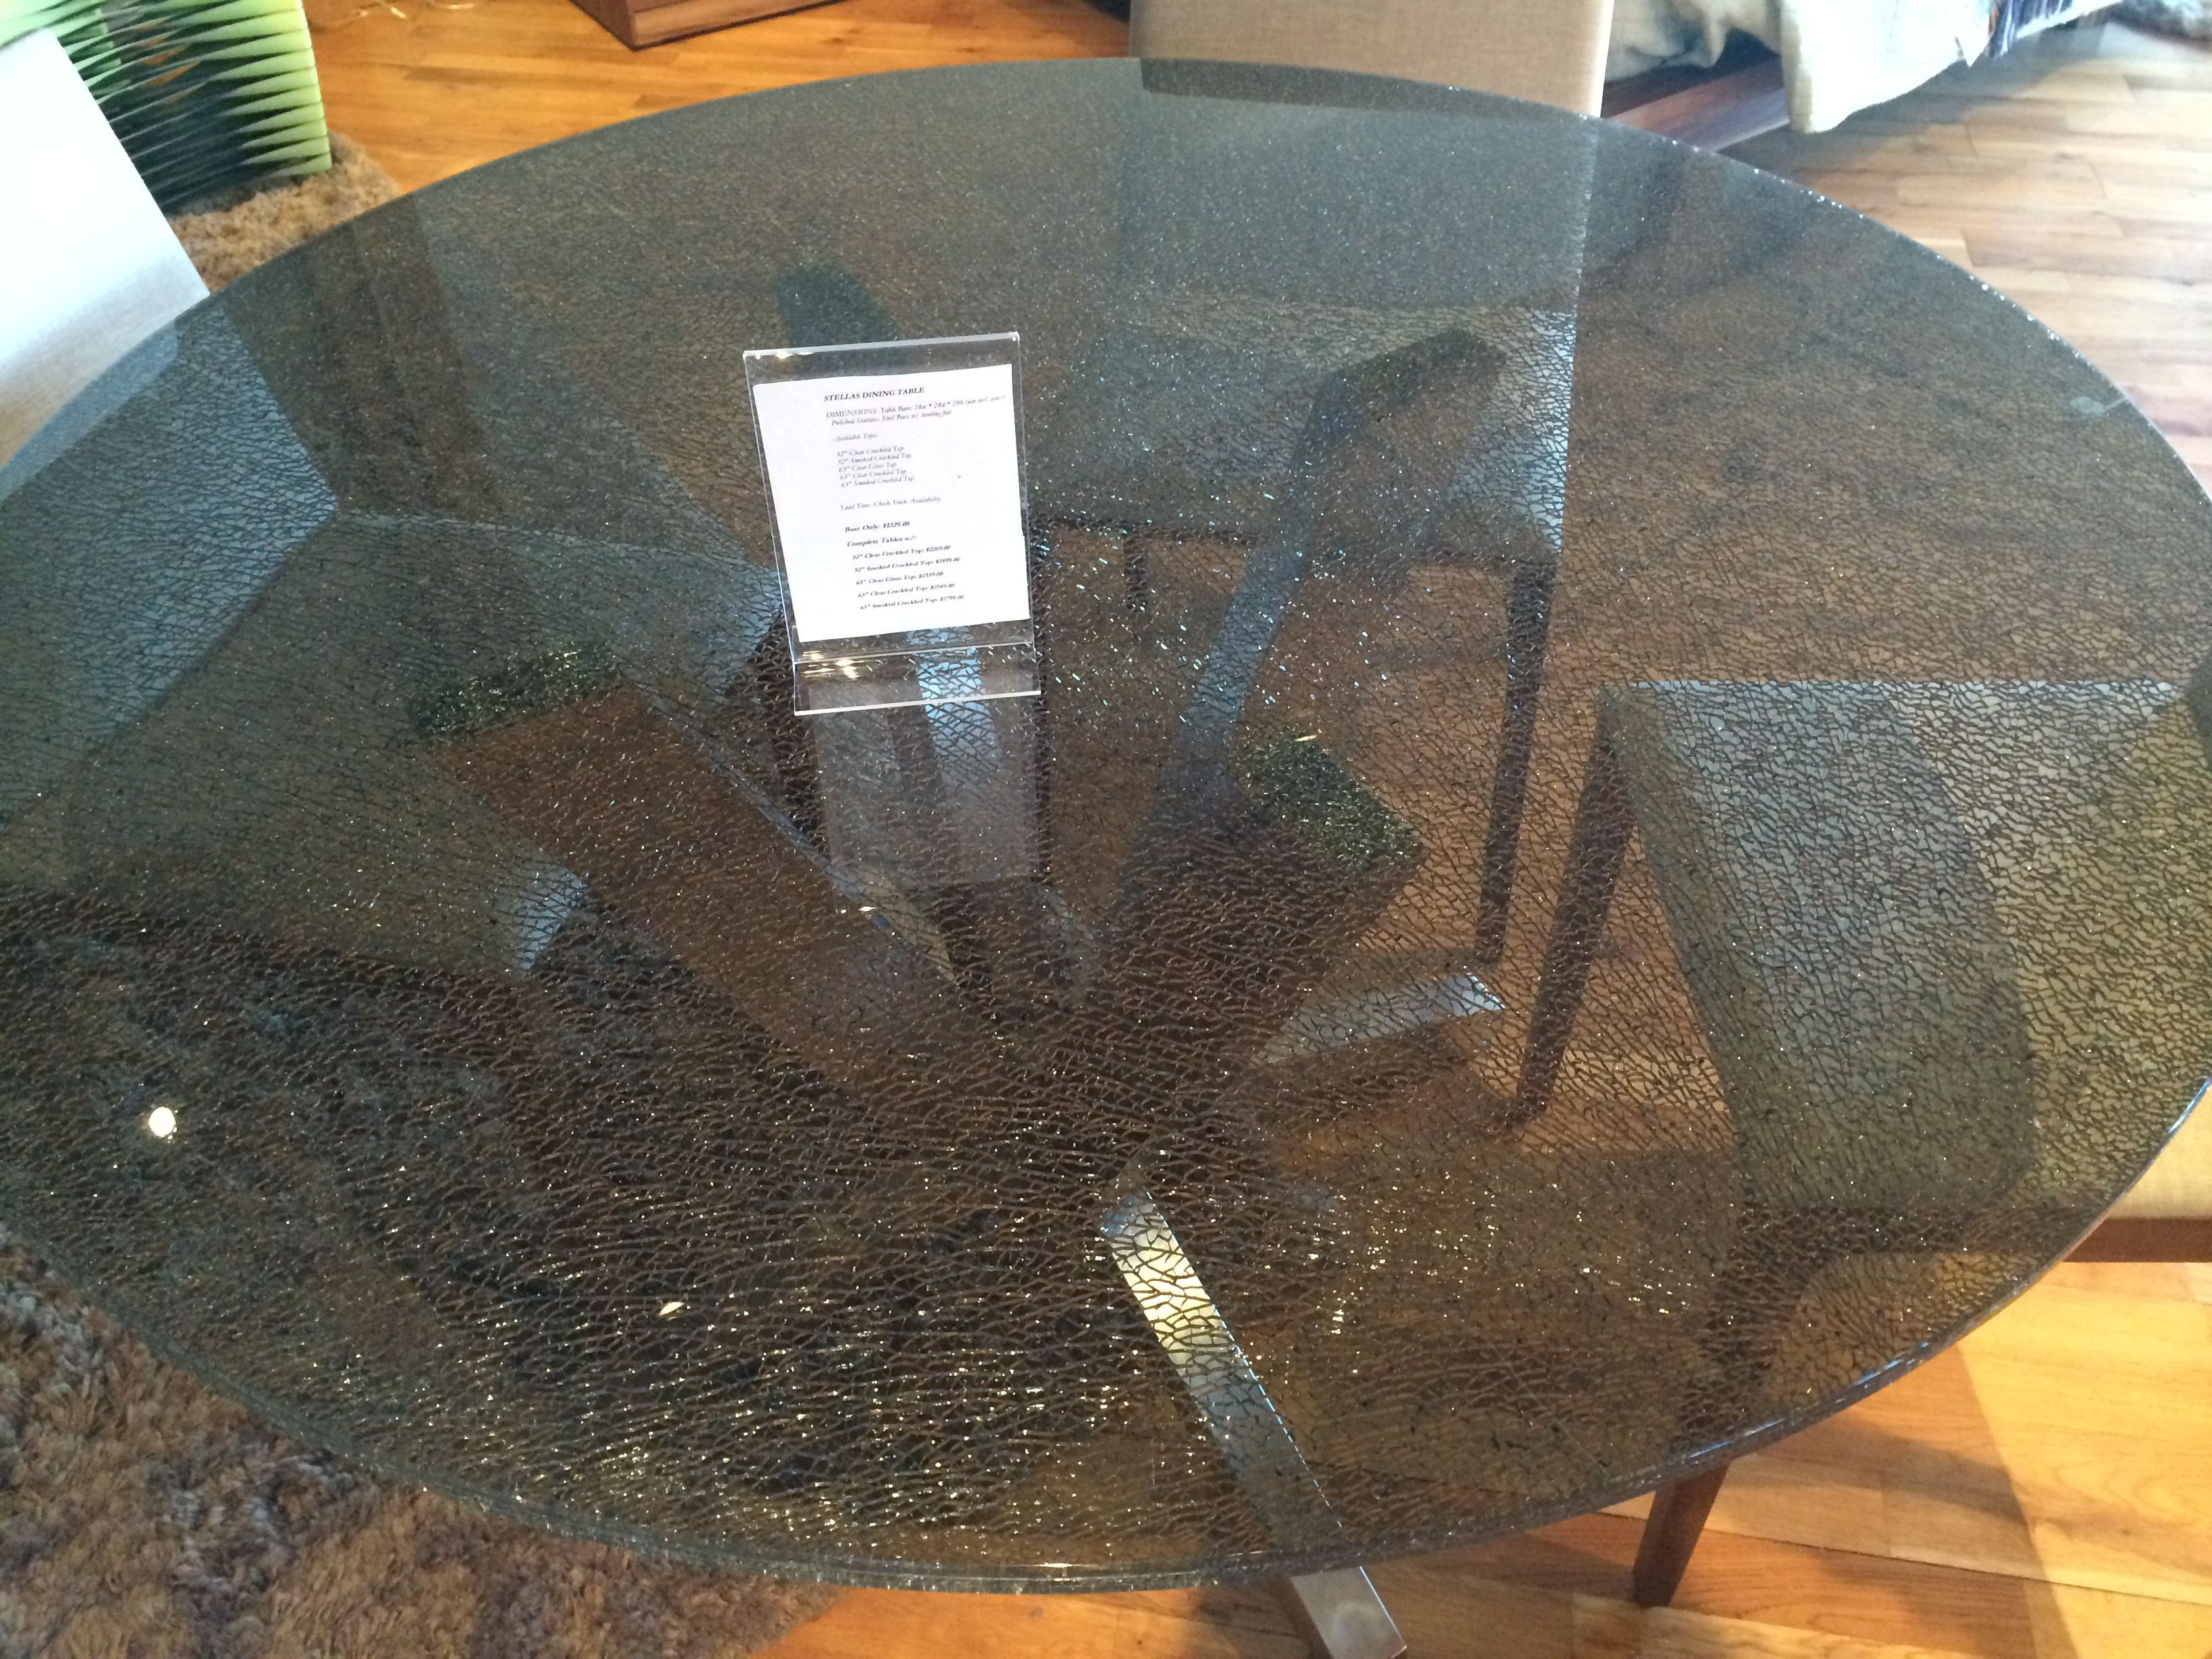 Ironhorse Home Crackled Glass Top Dining Table Very Unique Glass Dining Room Table Glass Dining Table Designs Glass Dining Table [ 2448 x 3264 Pixel ]